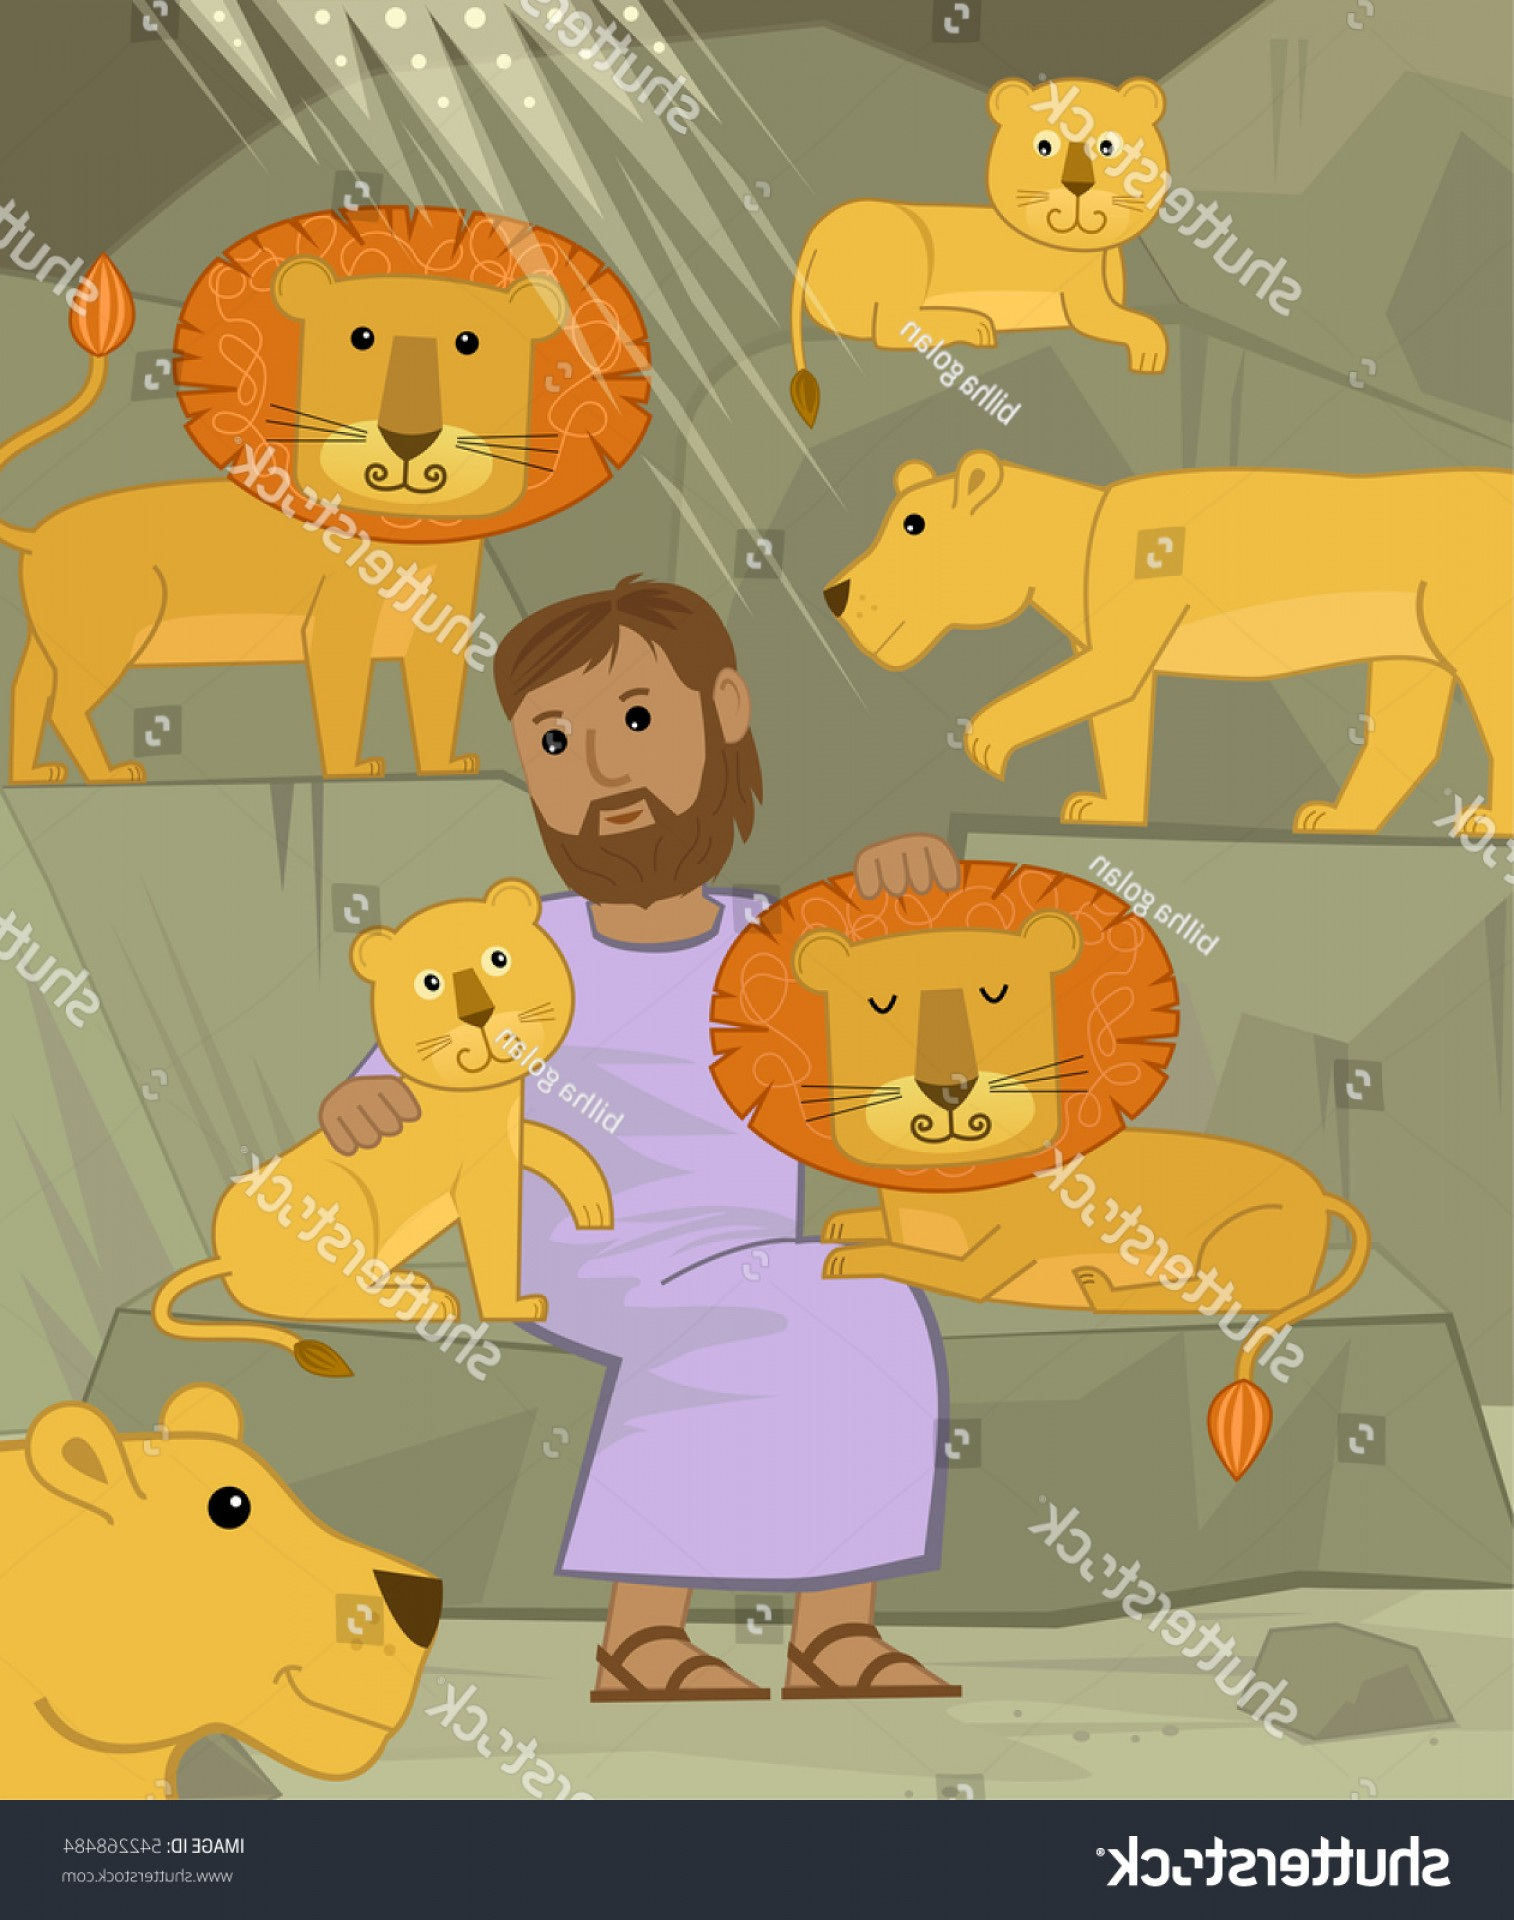 Faith Lions Vector Art Images: Daniel Lions Cute Illustration Den Eps